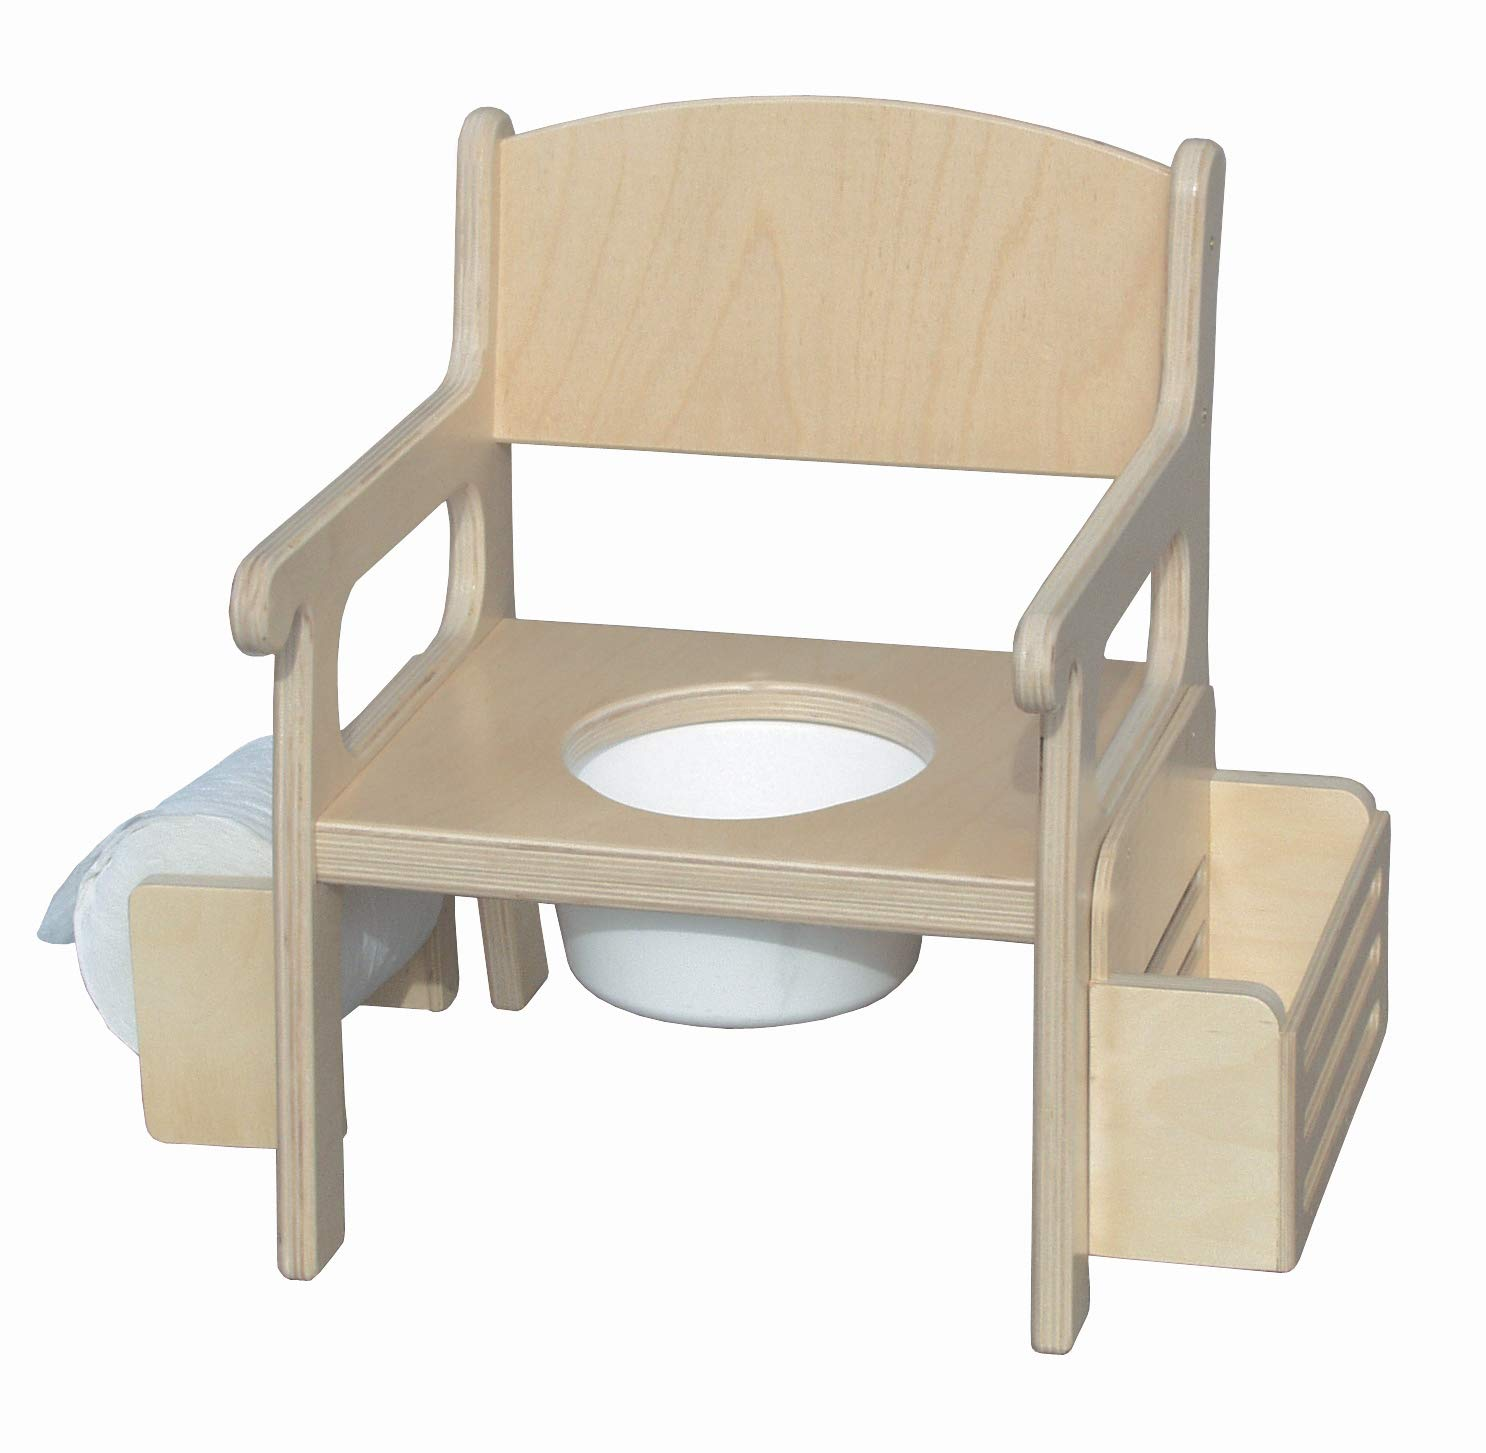 Little Colorado Natural Potty Chair with Accessories